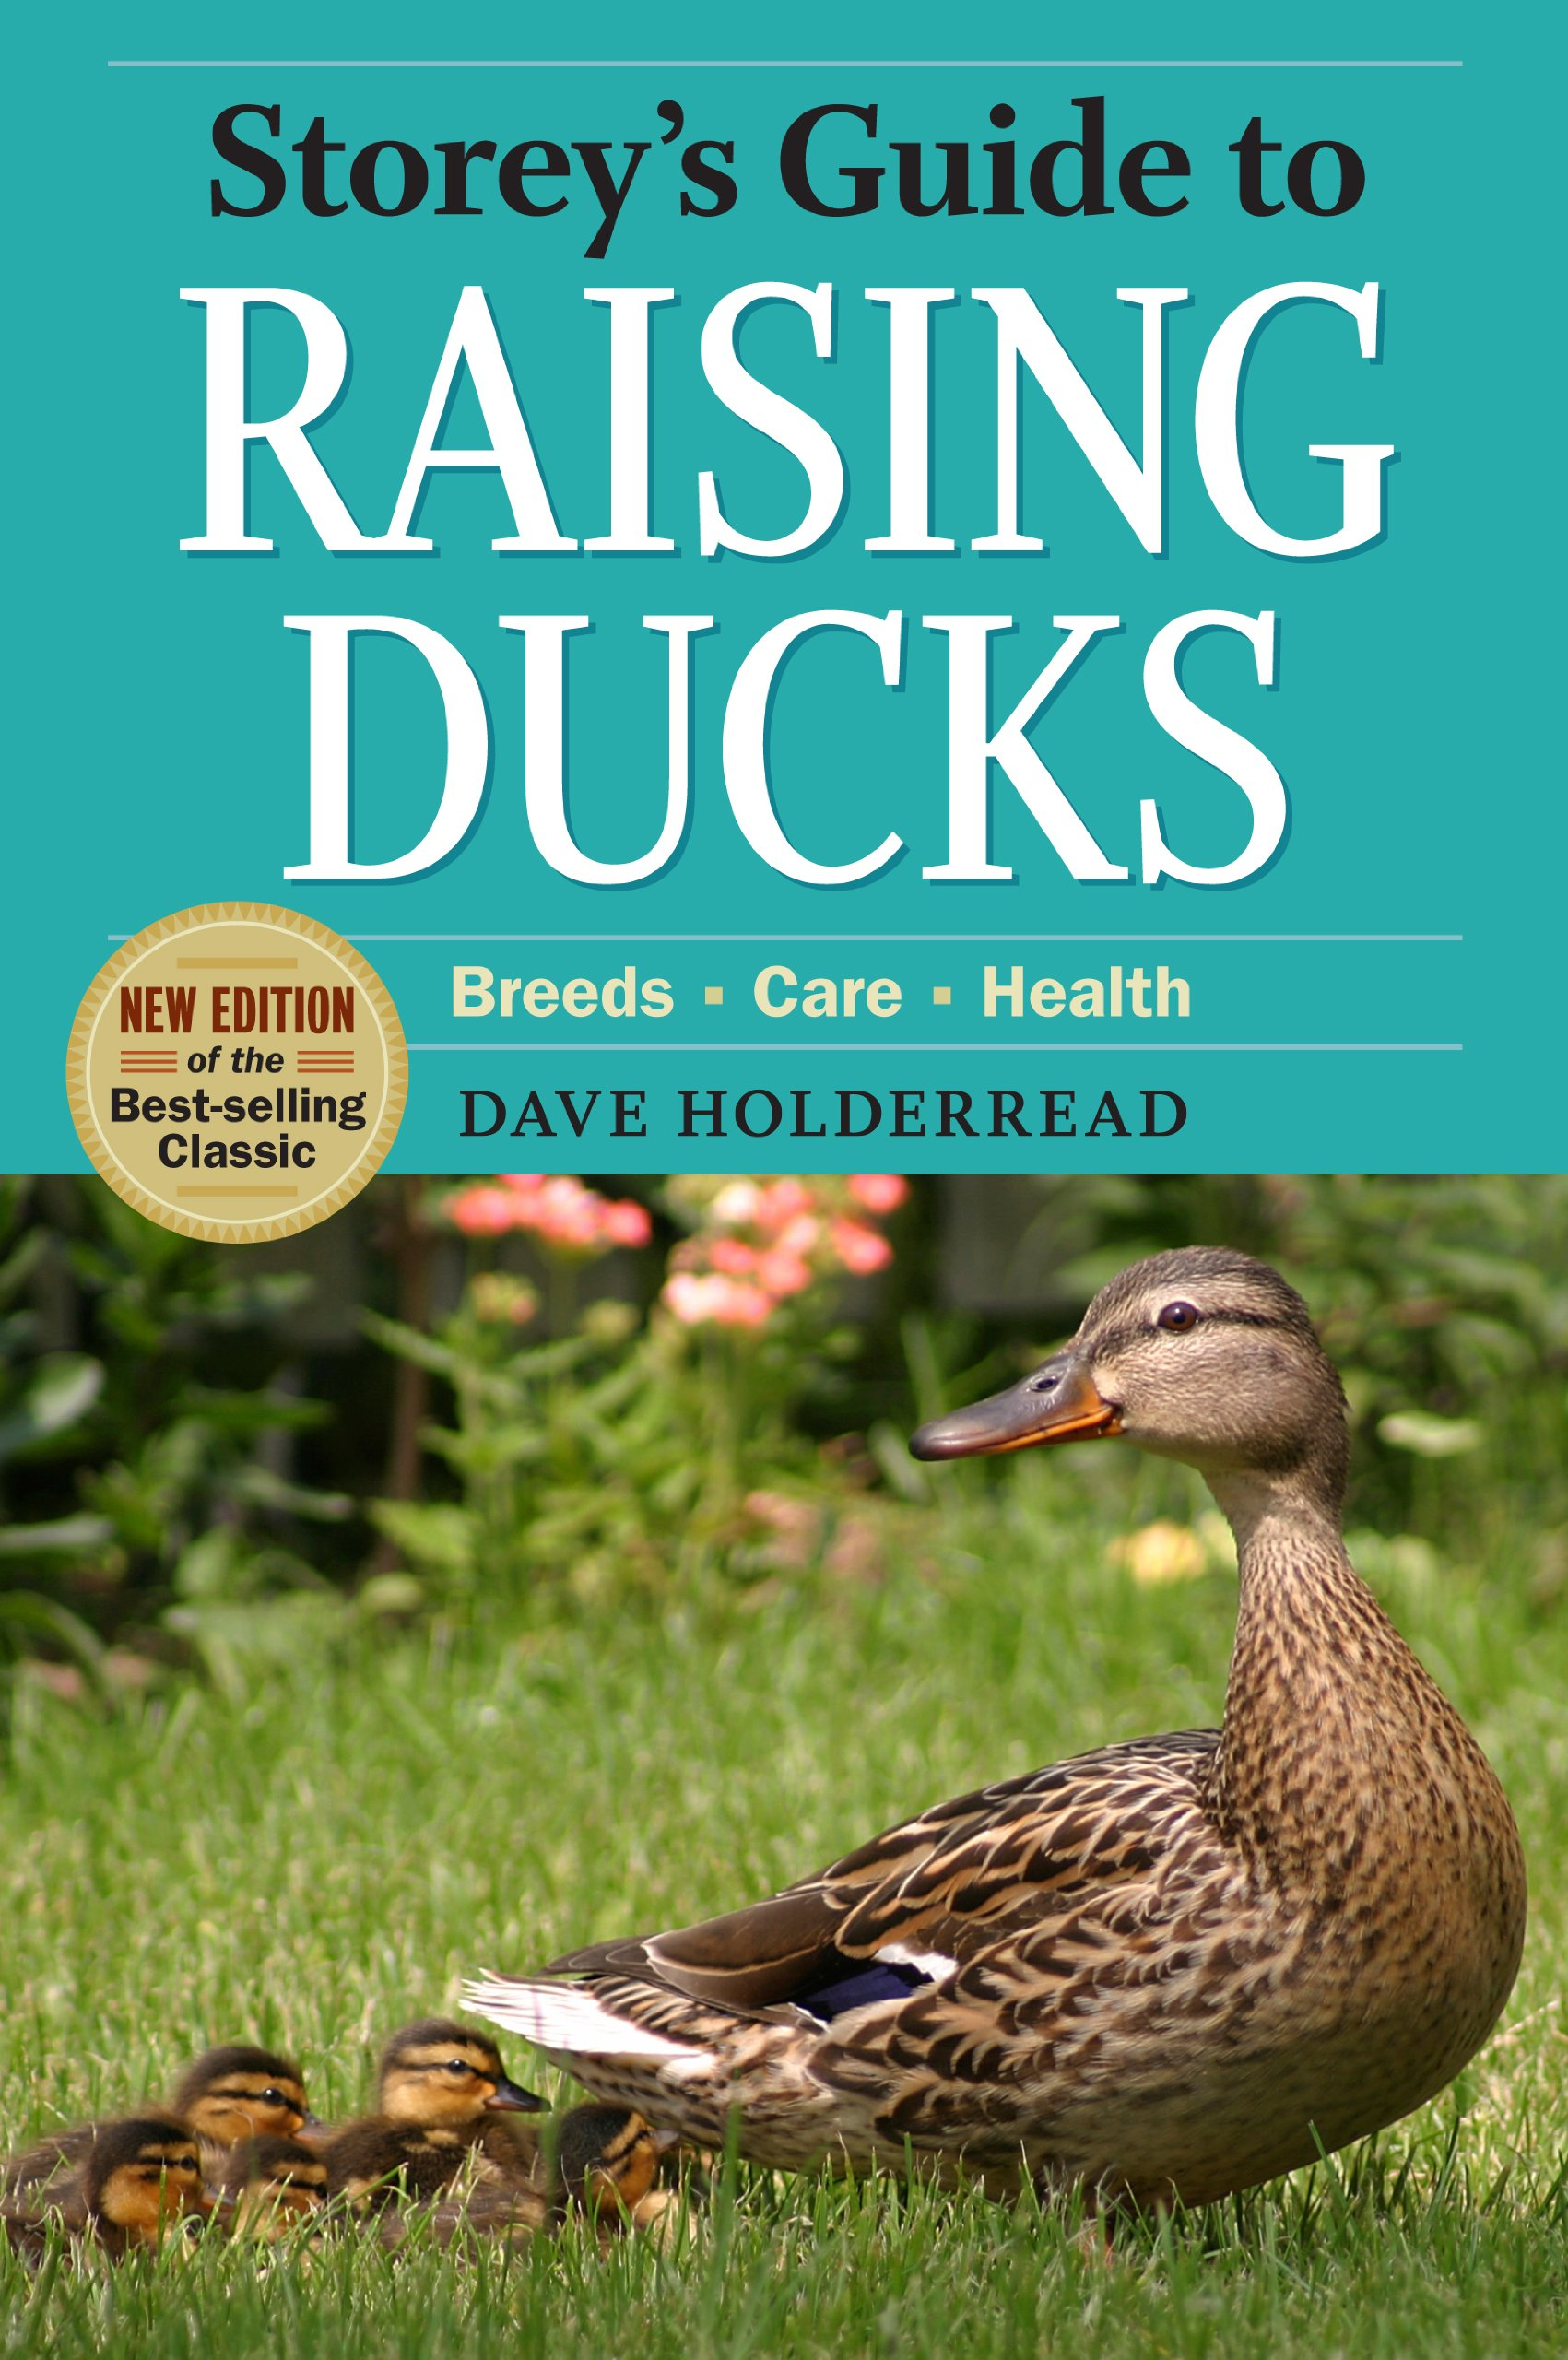 Storey's Guide to Raising Ducks, 2nd Edition: Breeds, Care